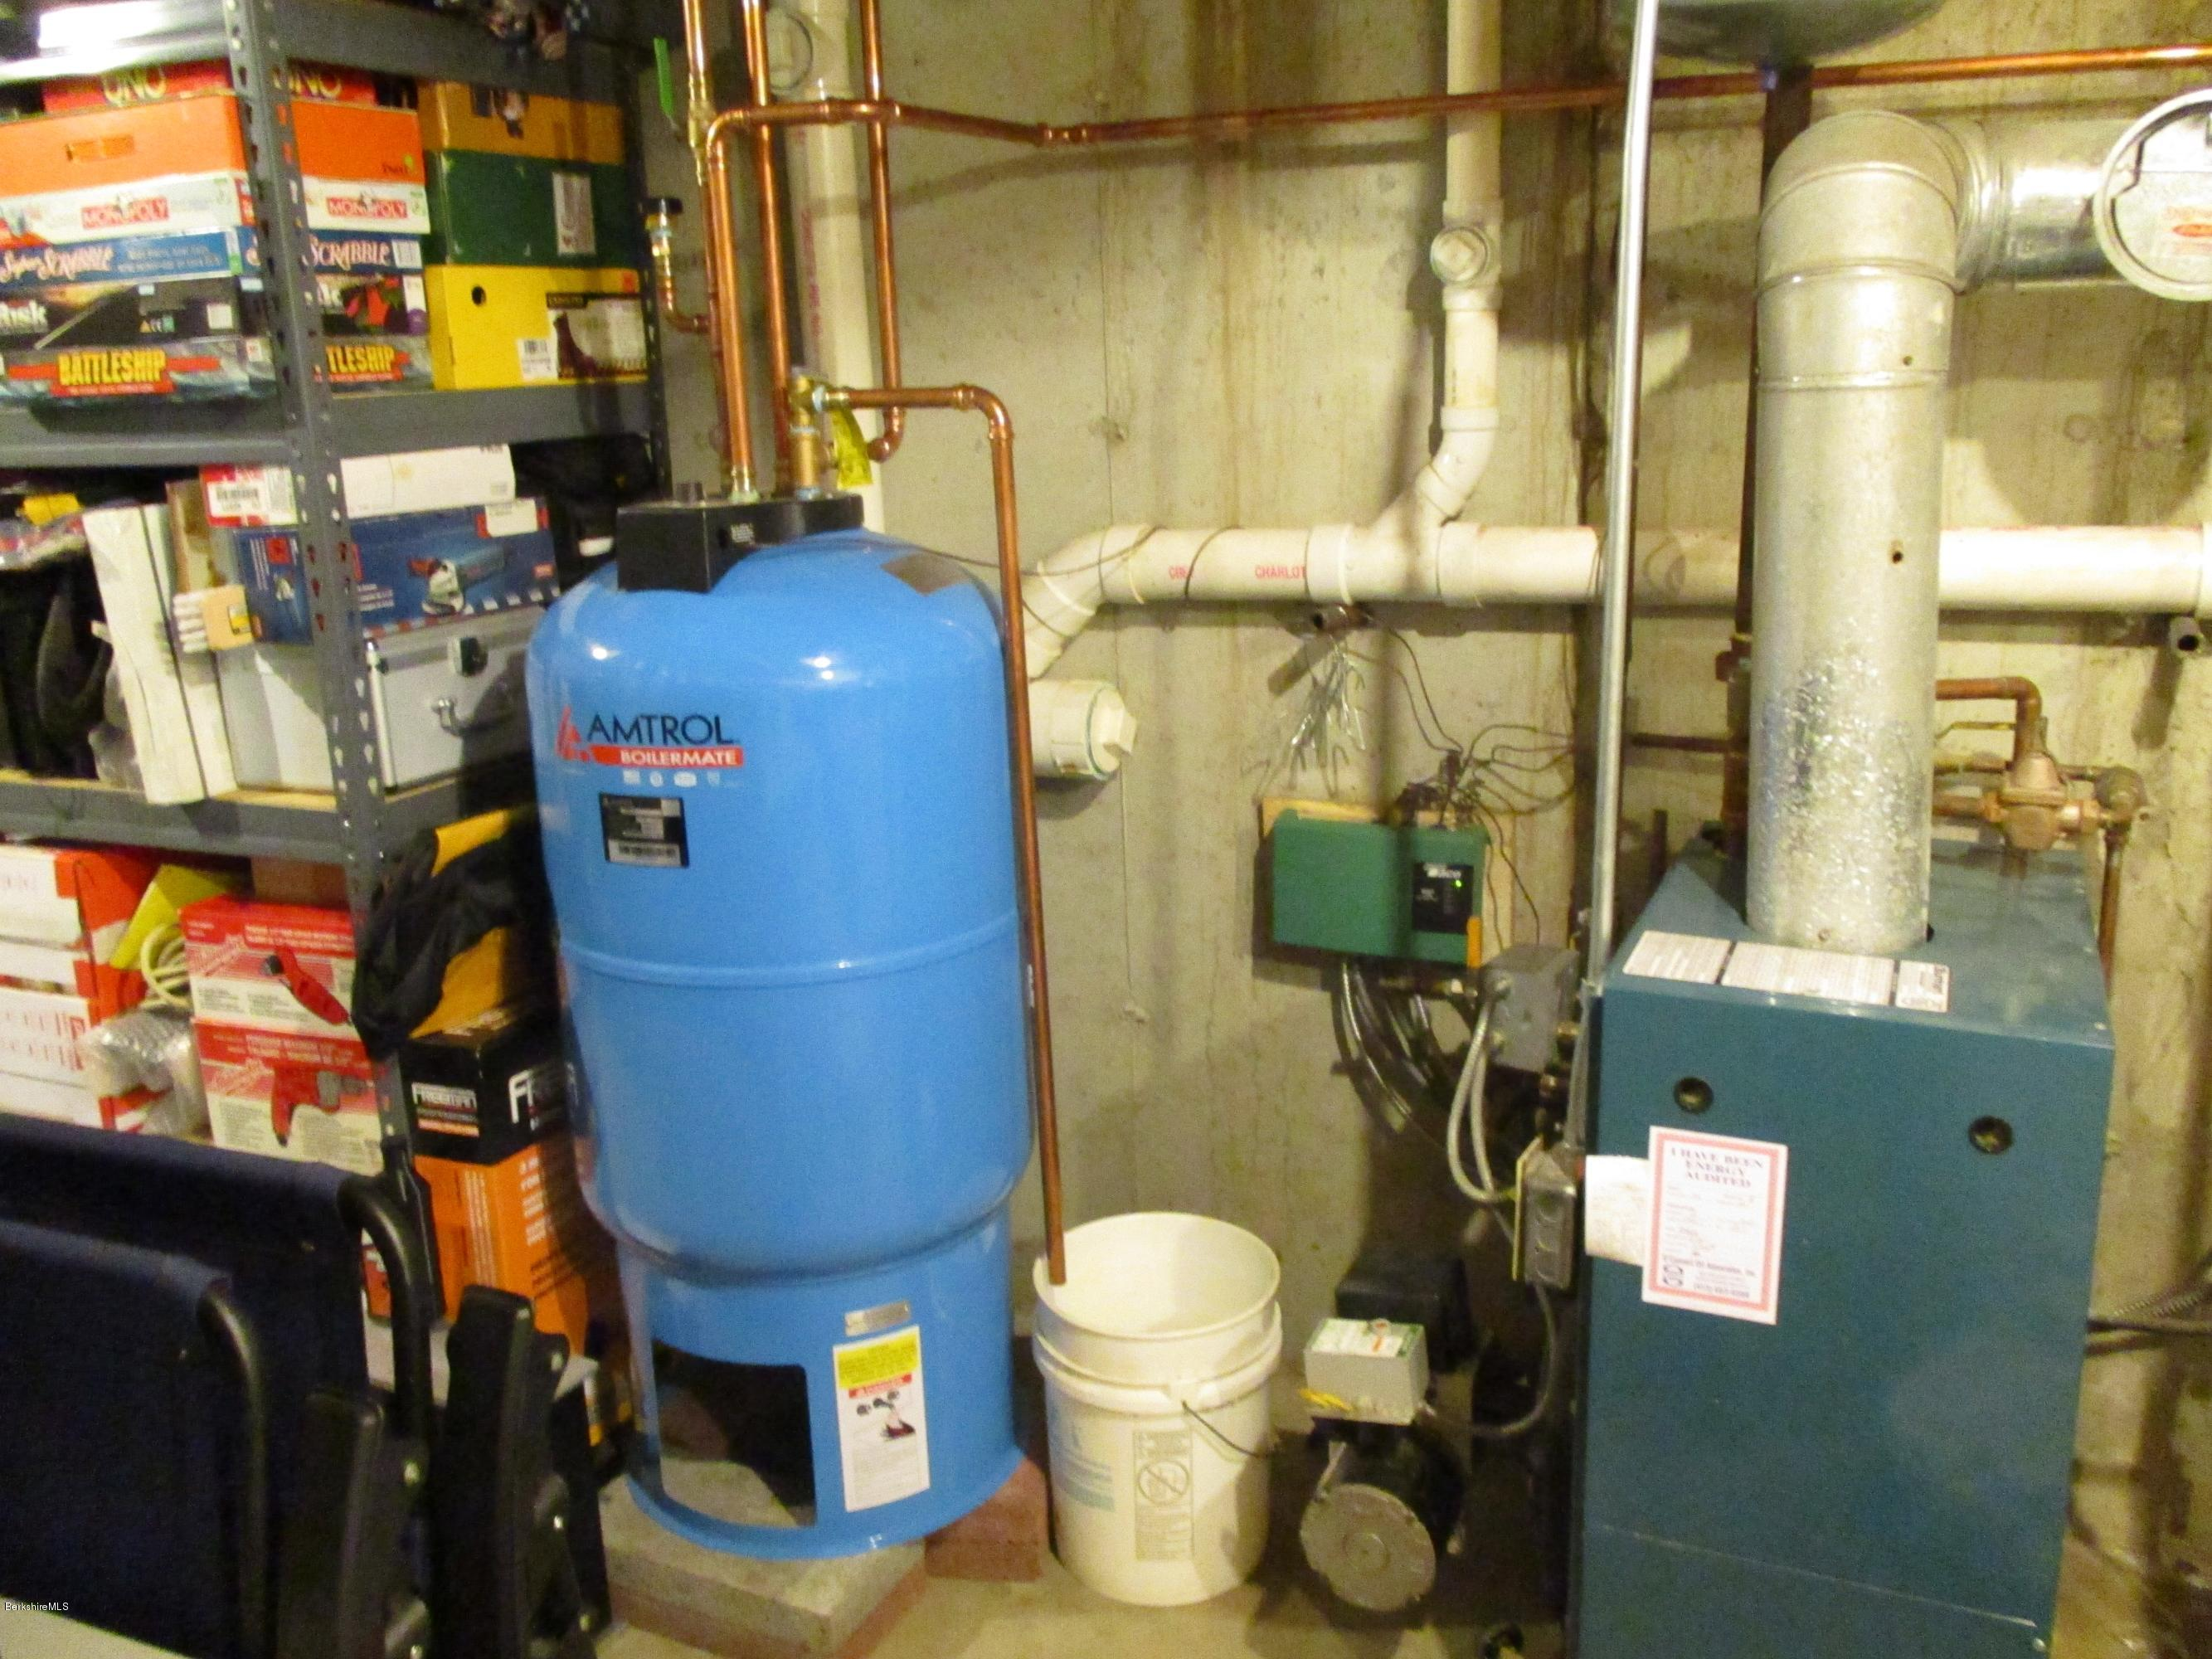 New Amtrol hot water heaters 44 gals